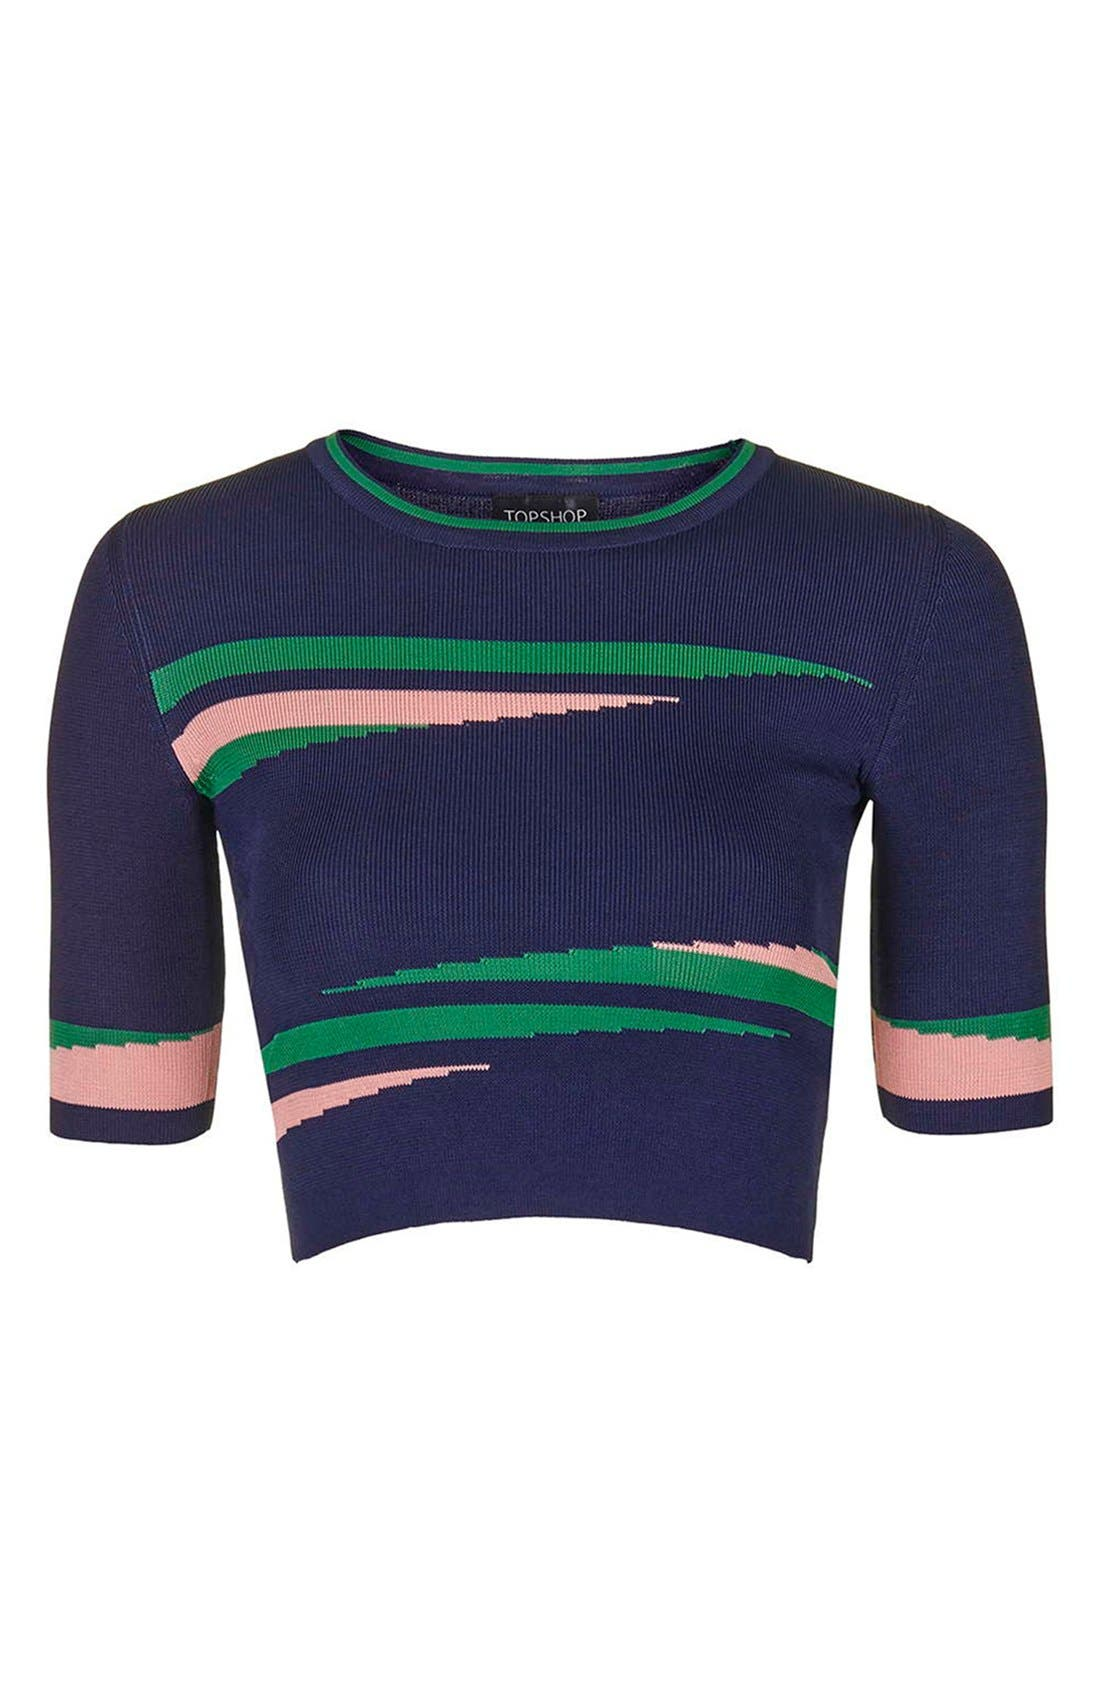 'Eraser Stripe' Crop Top,                             Alternate thumbnail 4, color,                             410